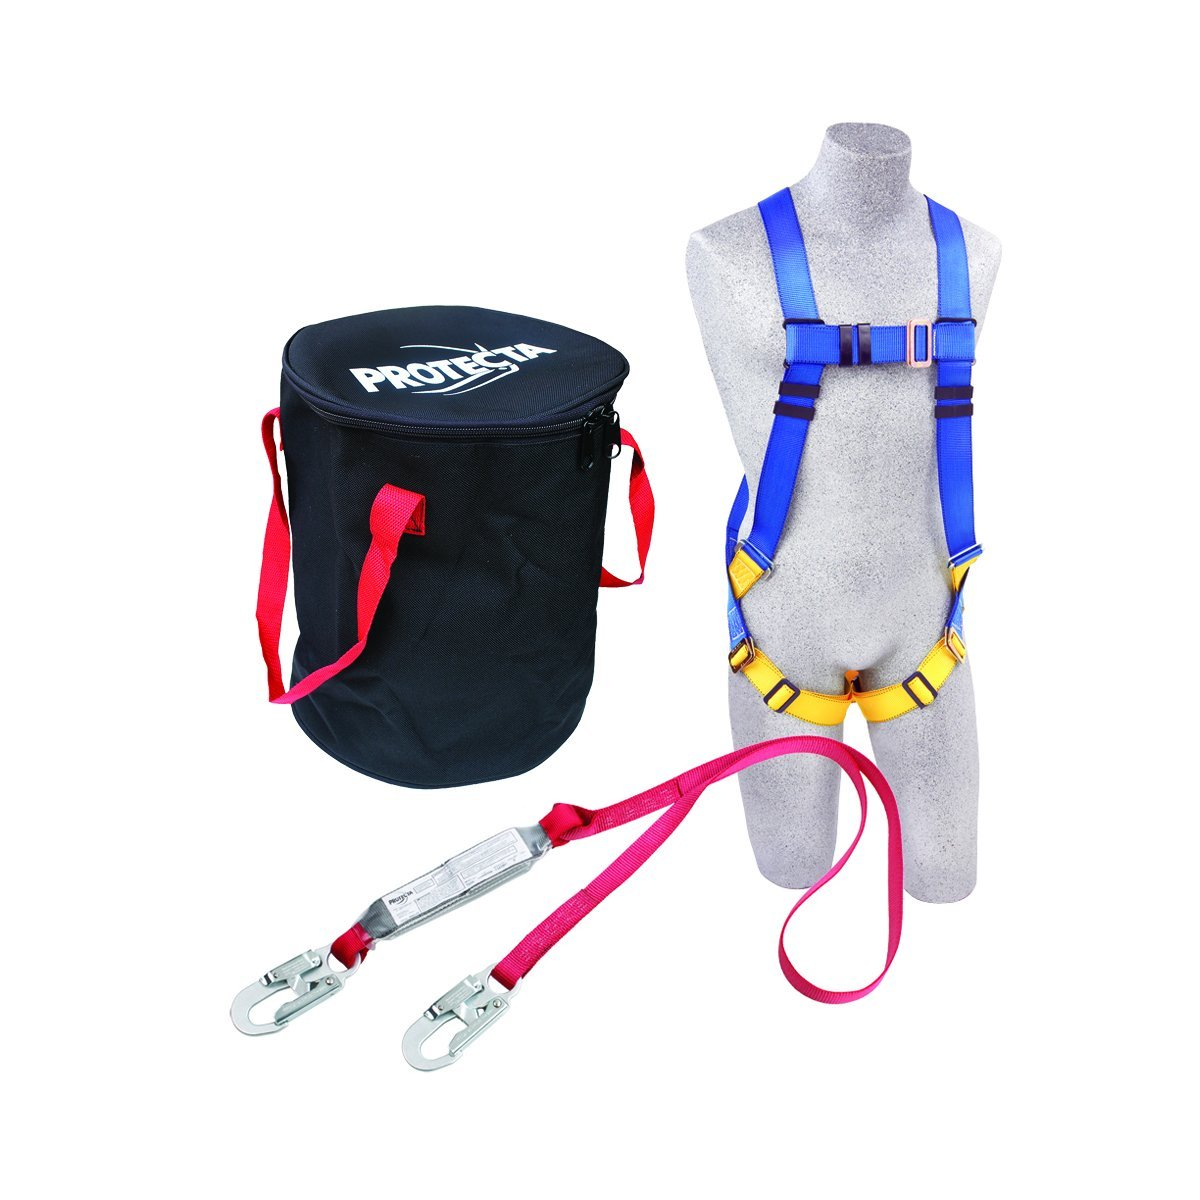 3M Protecta Compliance In A Can Light, 2199808 Roofers Kit, 5-Point Universal Harness, Single Leg 6' Shock Absorbing Lanyard, 310  lb. rated, Black/Red Bag